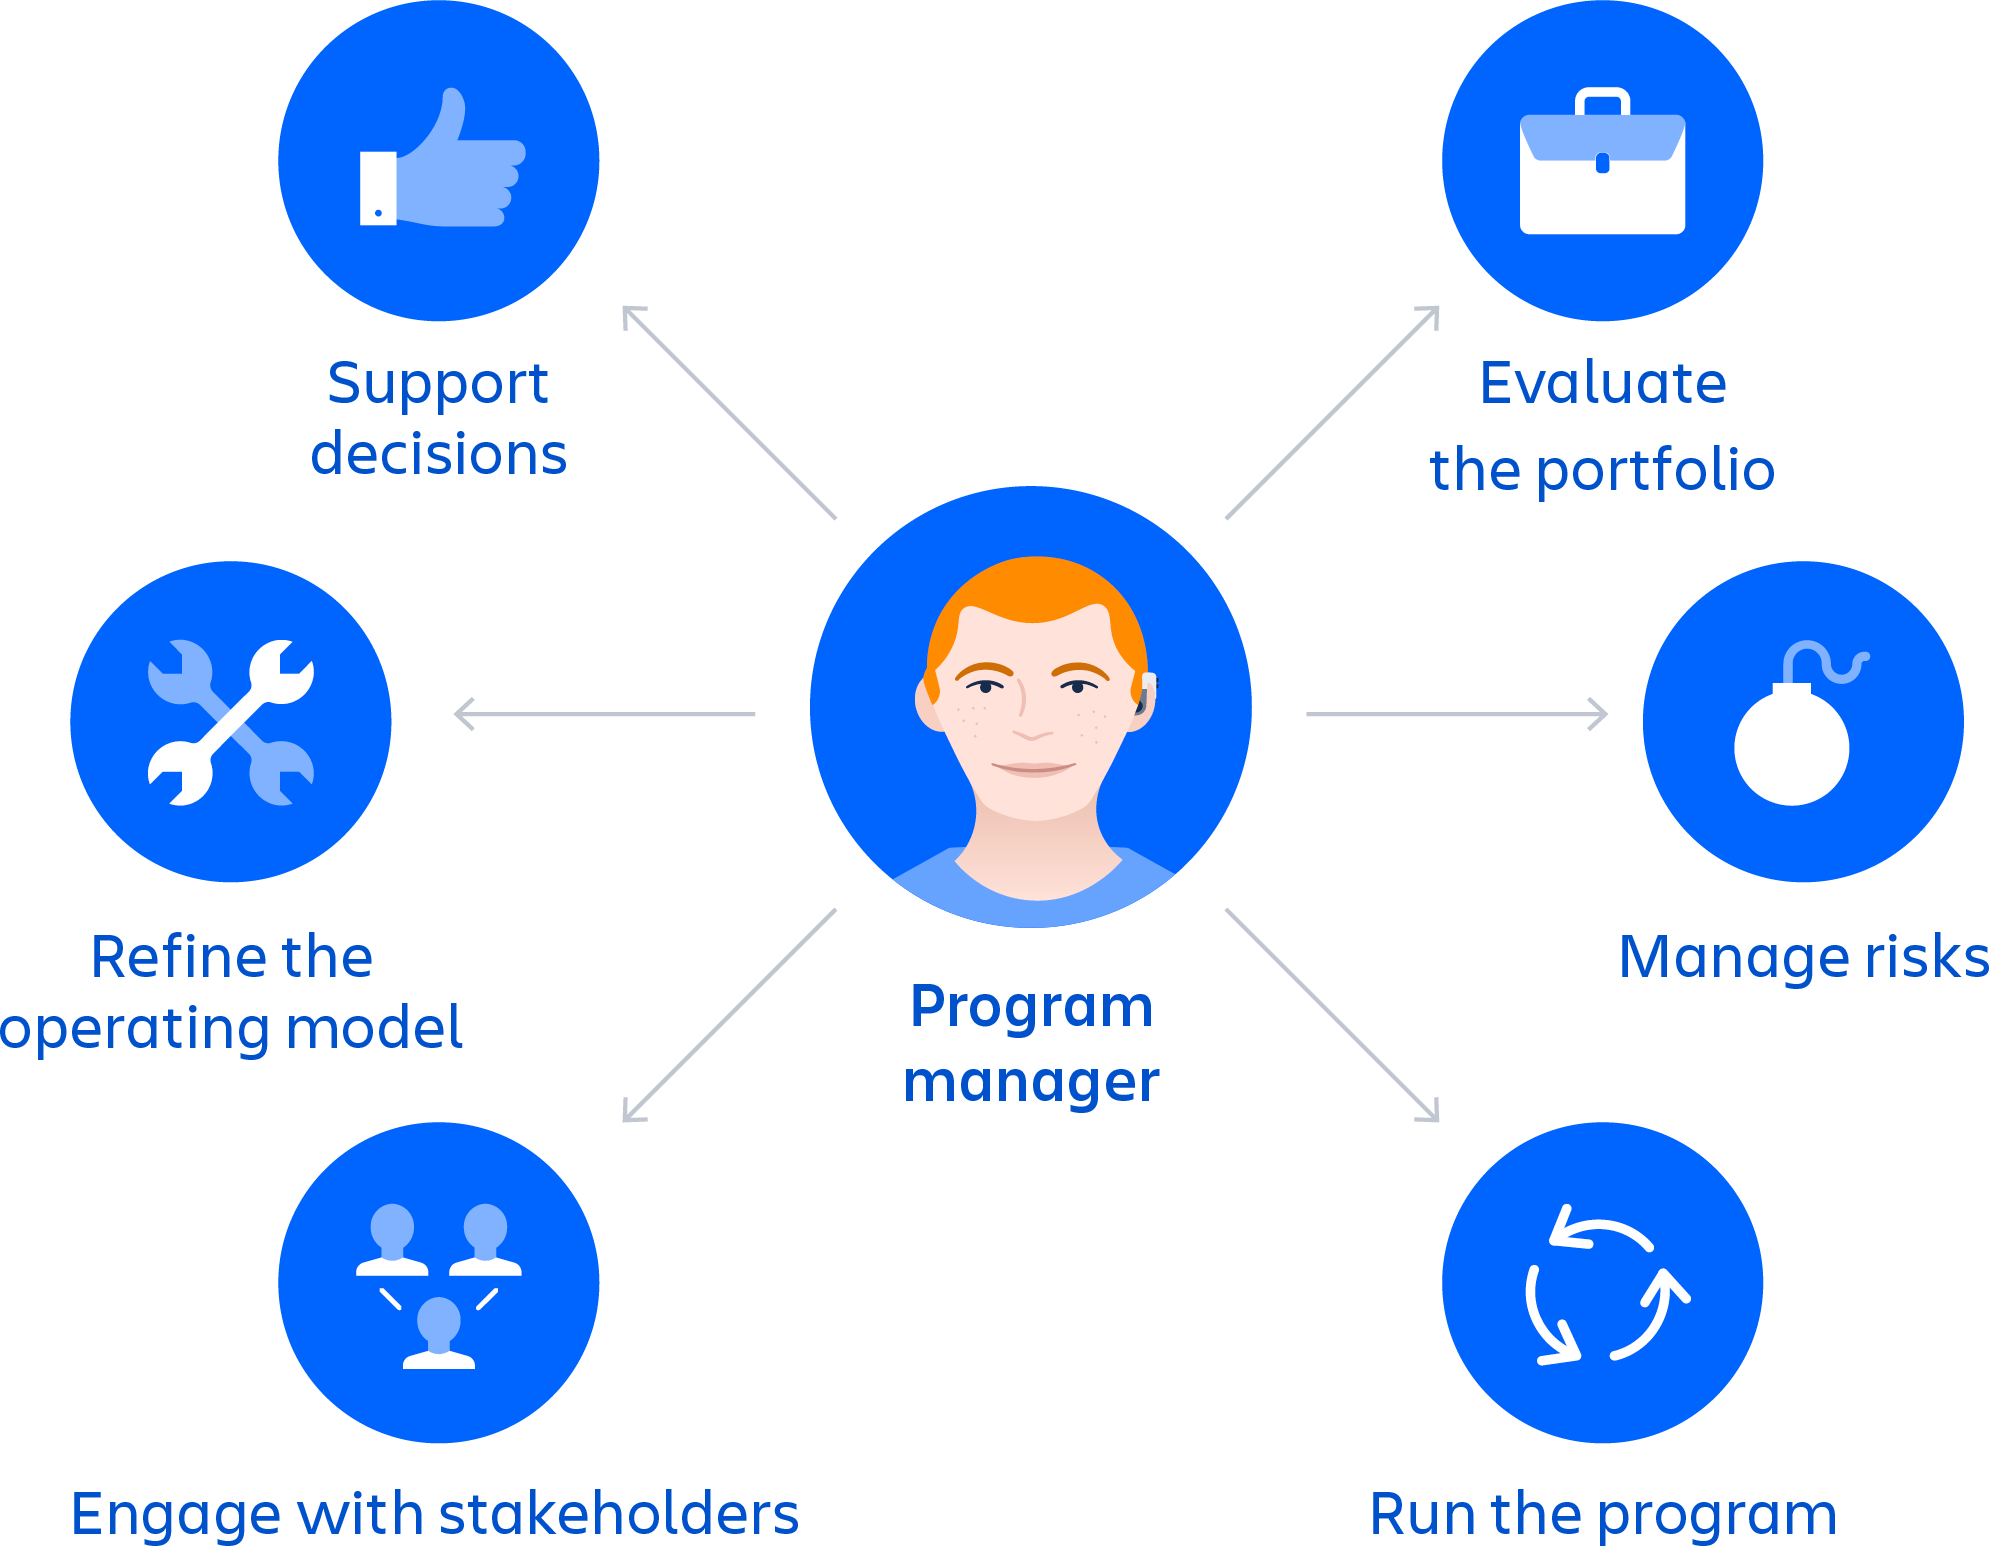 Program Manager meeple in the middle with arrows pointing out to six bubbles with icons that have text below each one: Evaluate the portfolio, Manage risks, Run the program, Engage with stakeholders, Refine the operating model, Support decisions